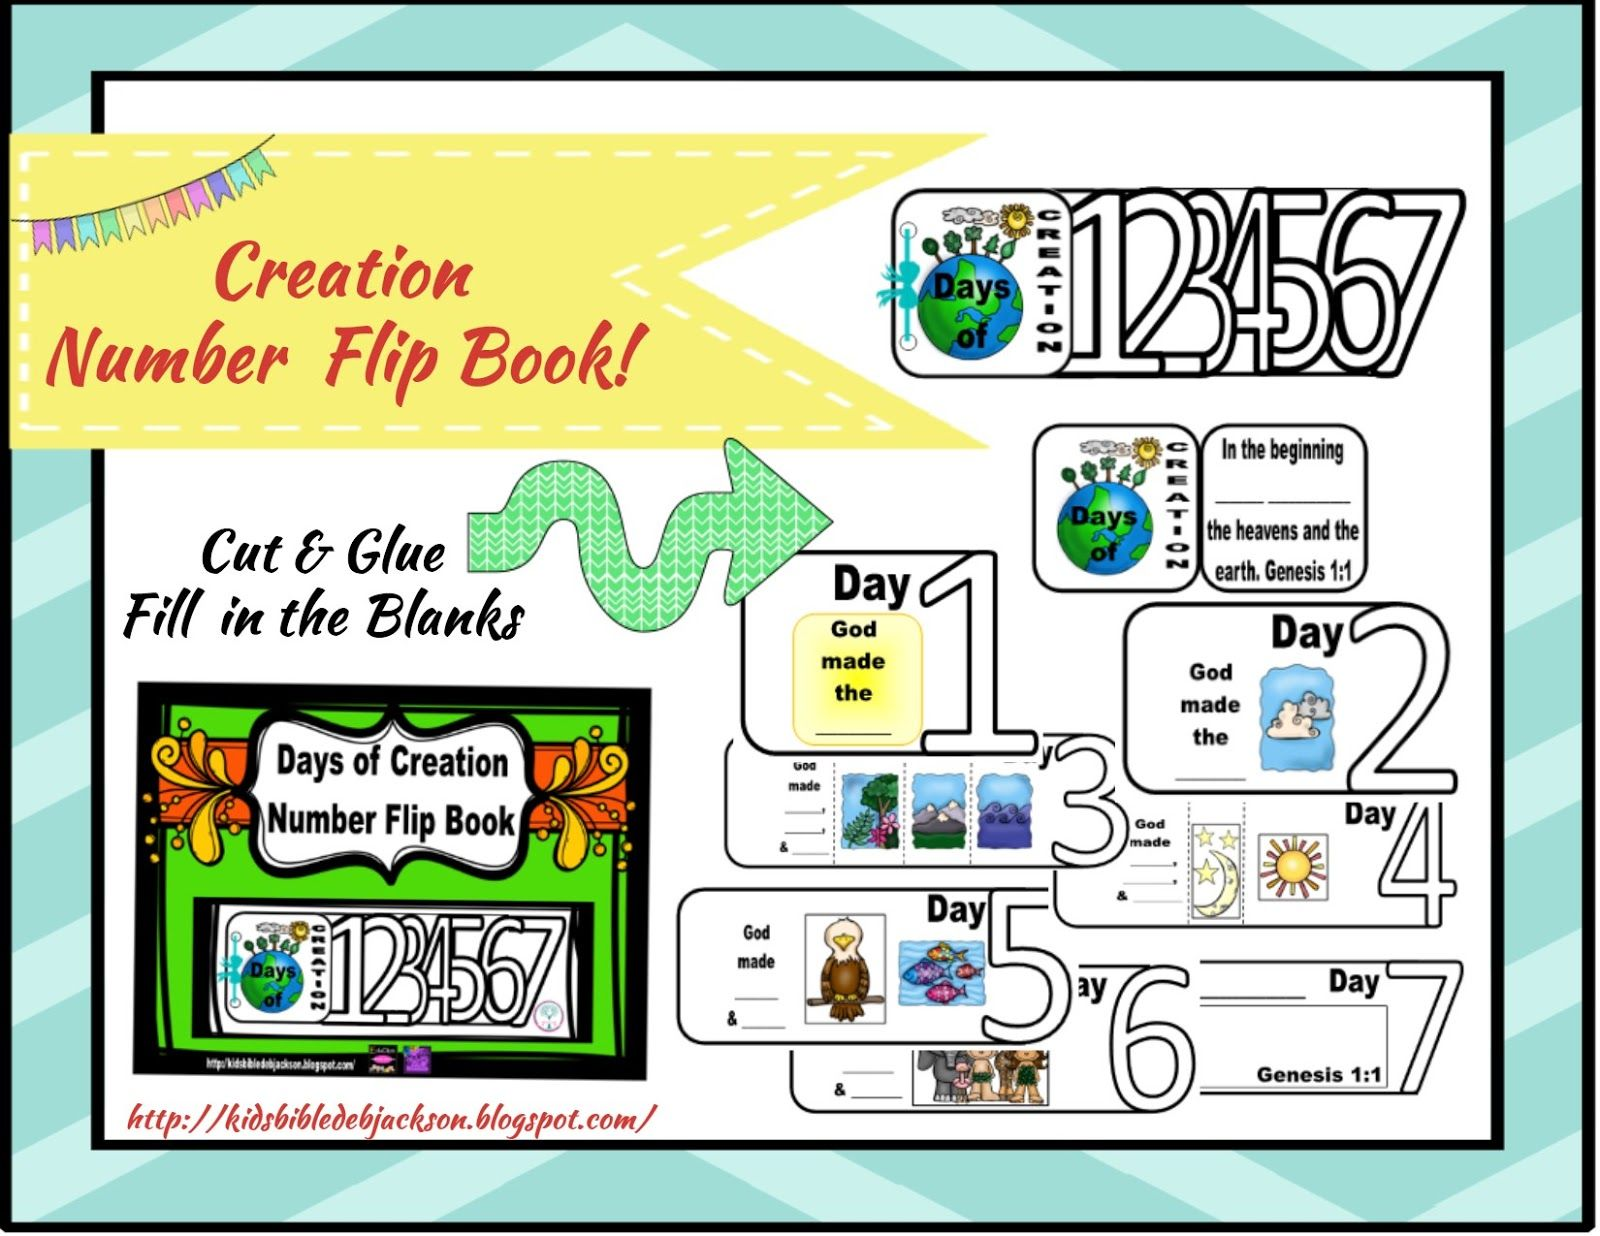 The Creation For Kids Day 4 Creation Number Flip Book Printable